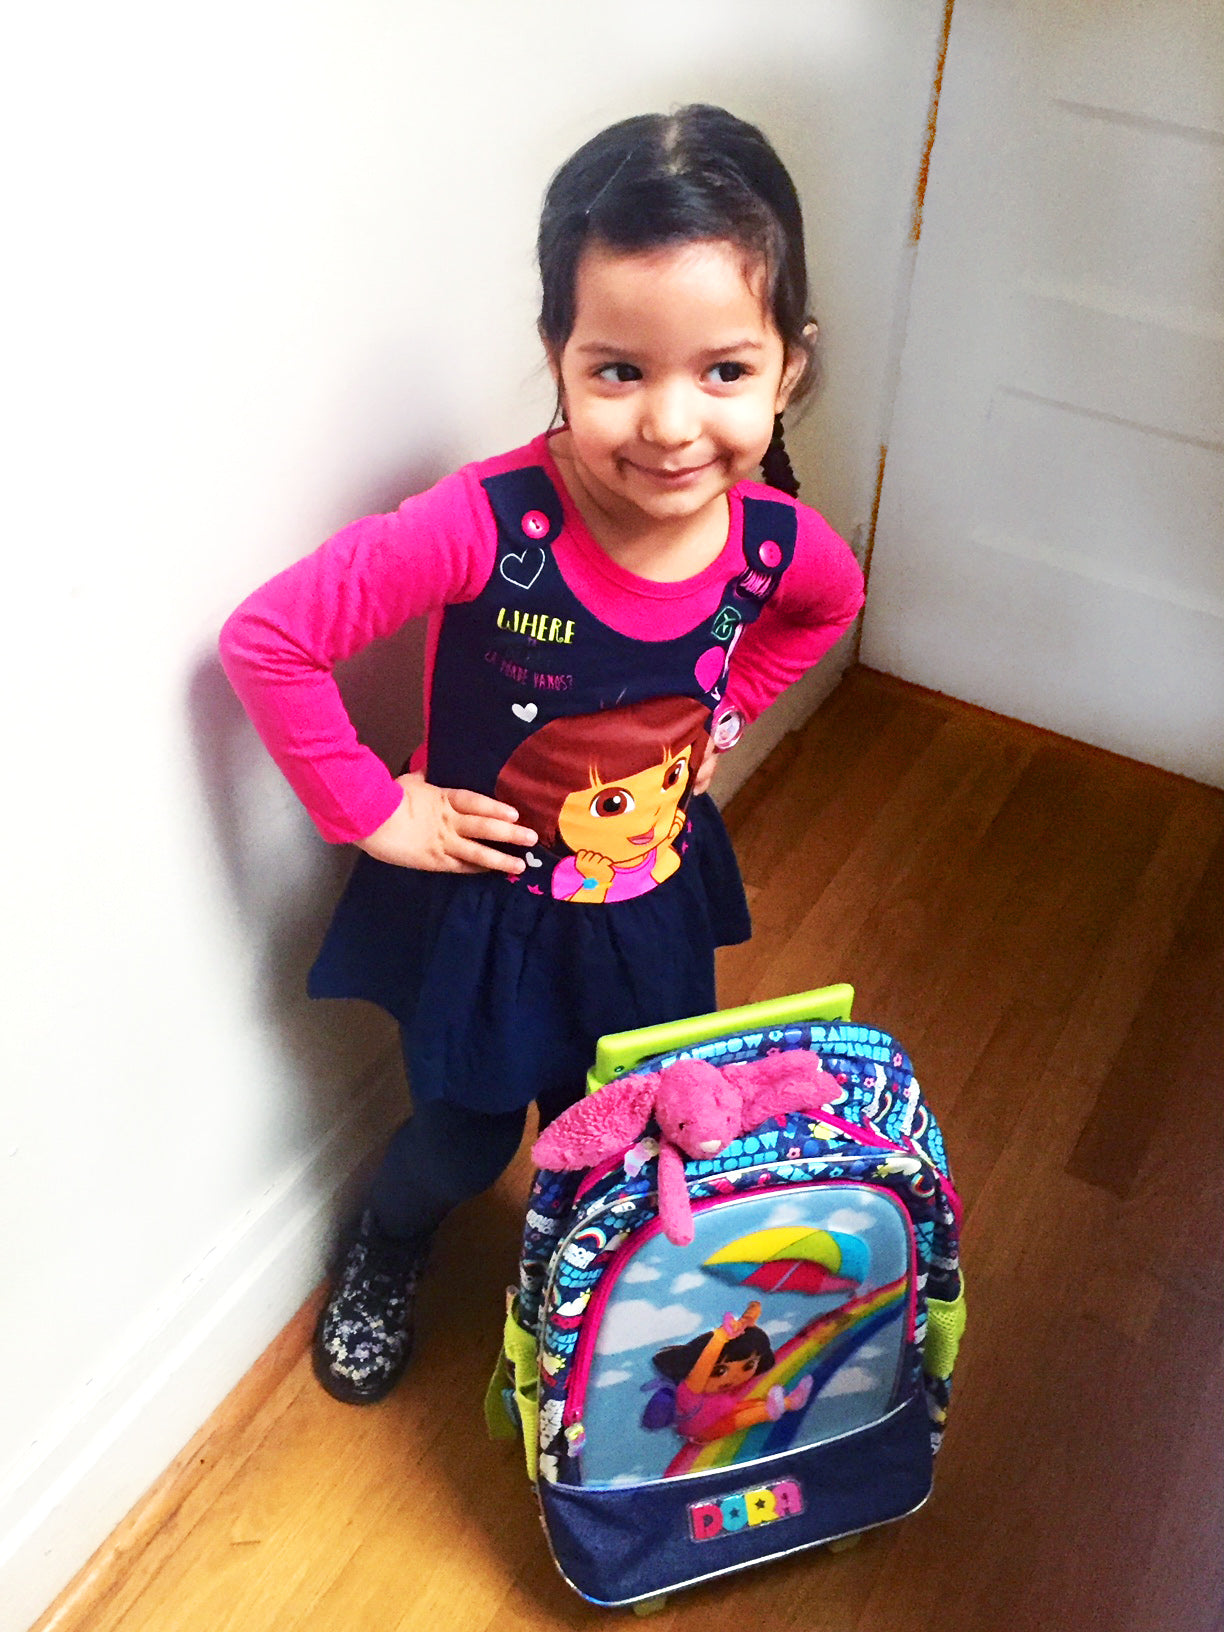 How to Get Your Little One Ready For the School Year